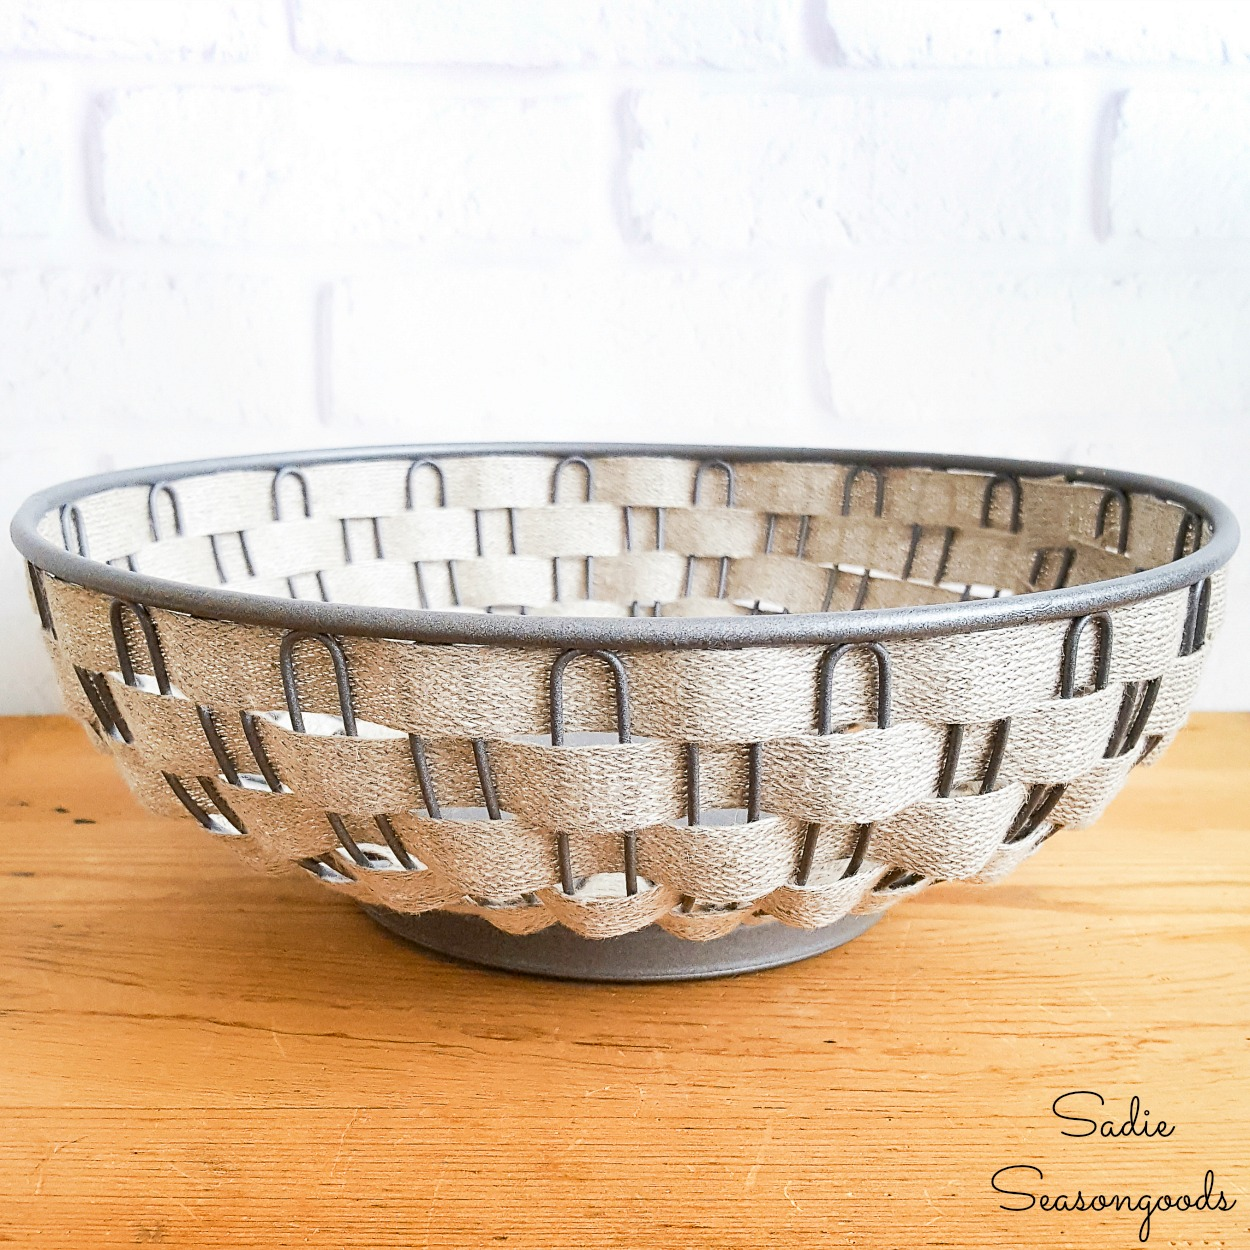 Vintage farmhouse decor with a wire bread basket and galvanized spray paint